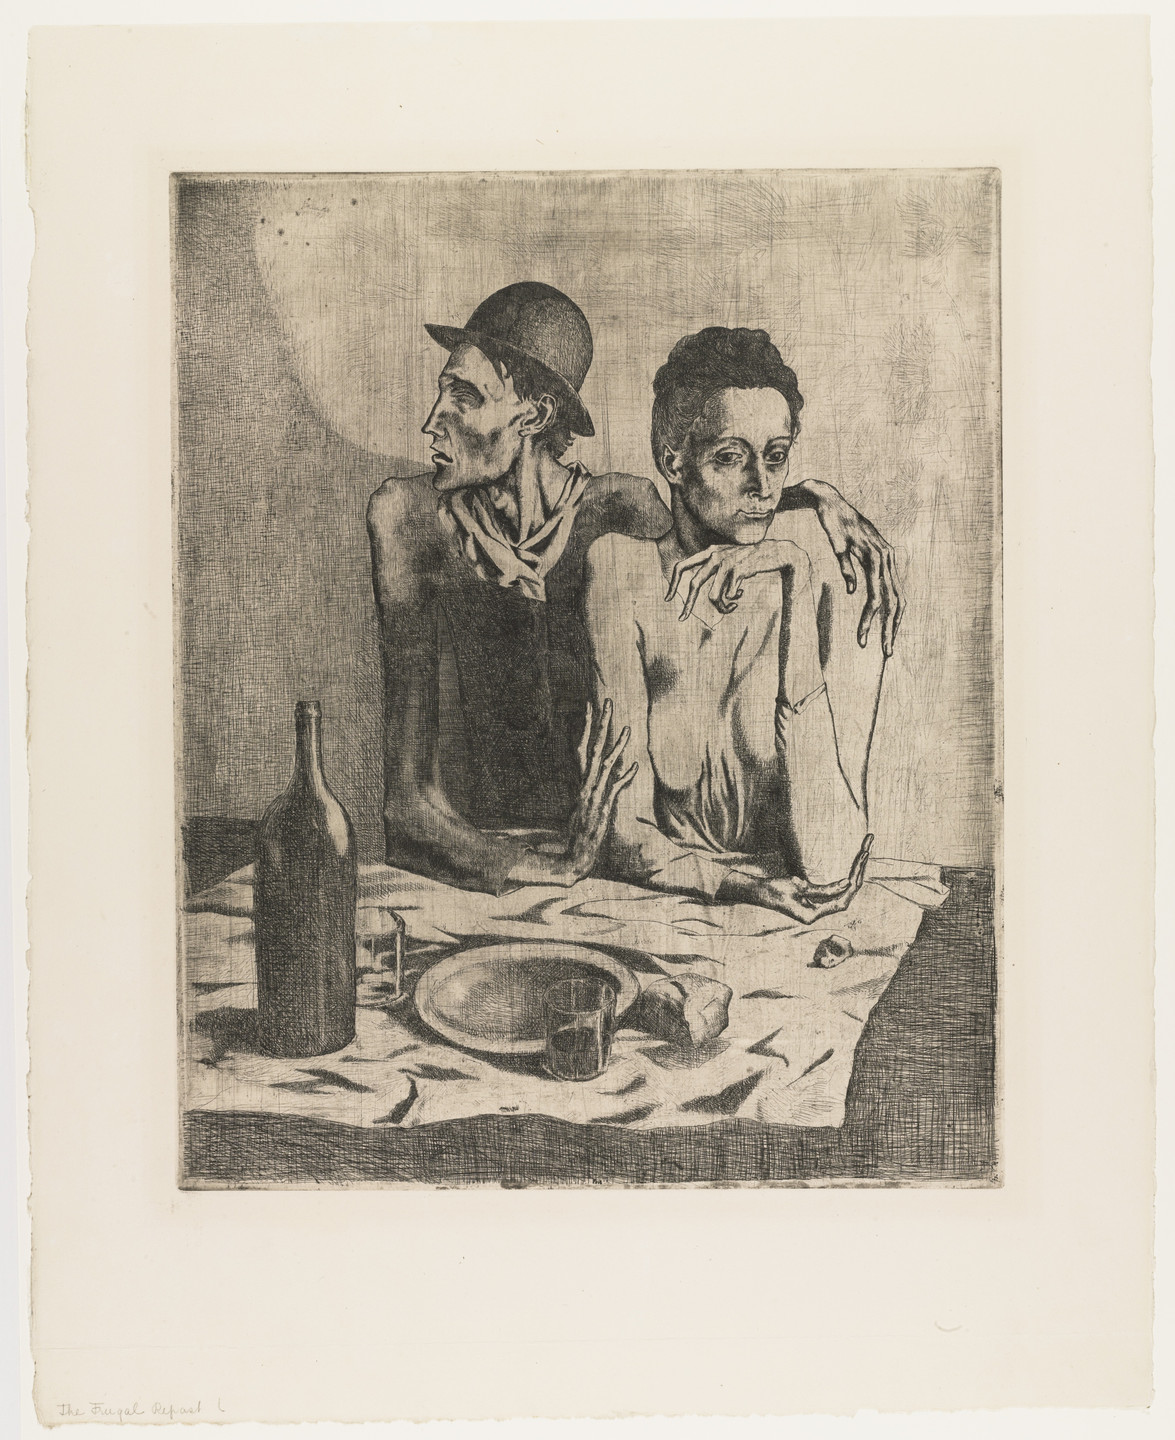 Pablo Picasso. The Frugal Repast (Le Repas frugal) from the Saltimbanques series. 1904, published 1913